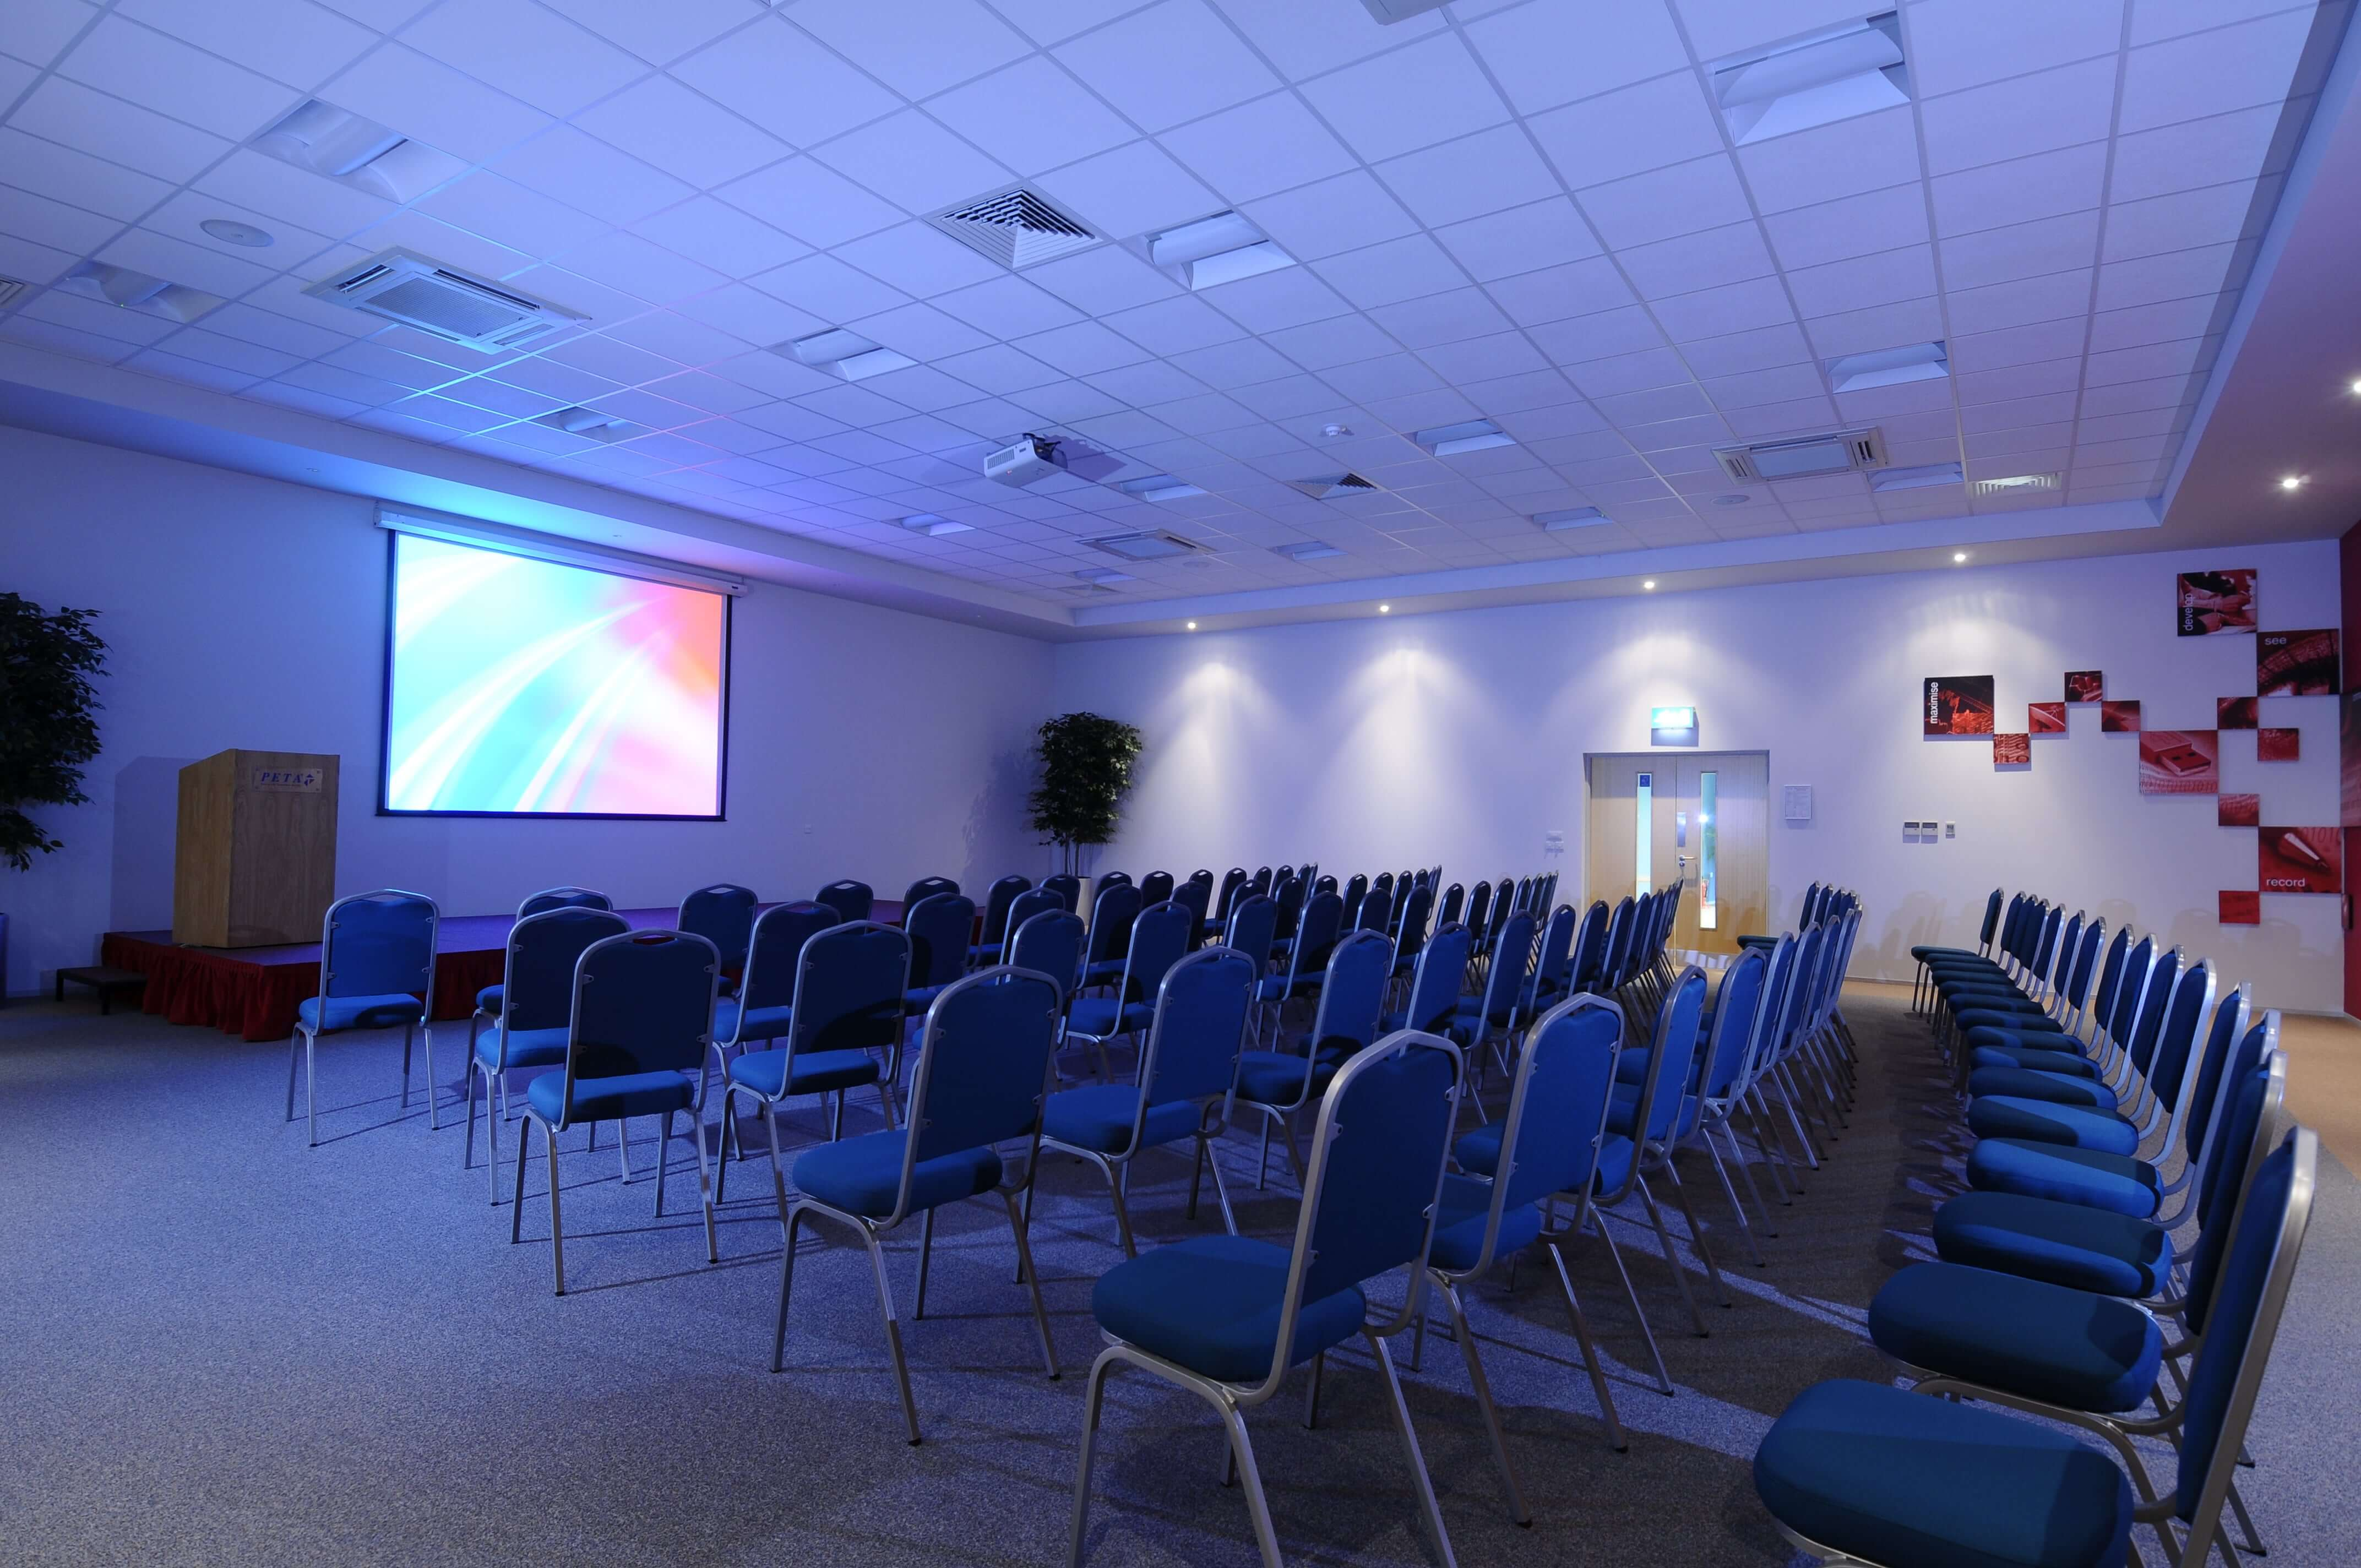 Theatre conference room with projector